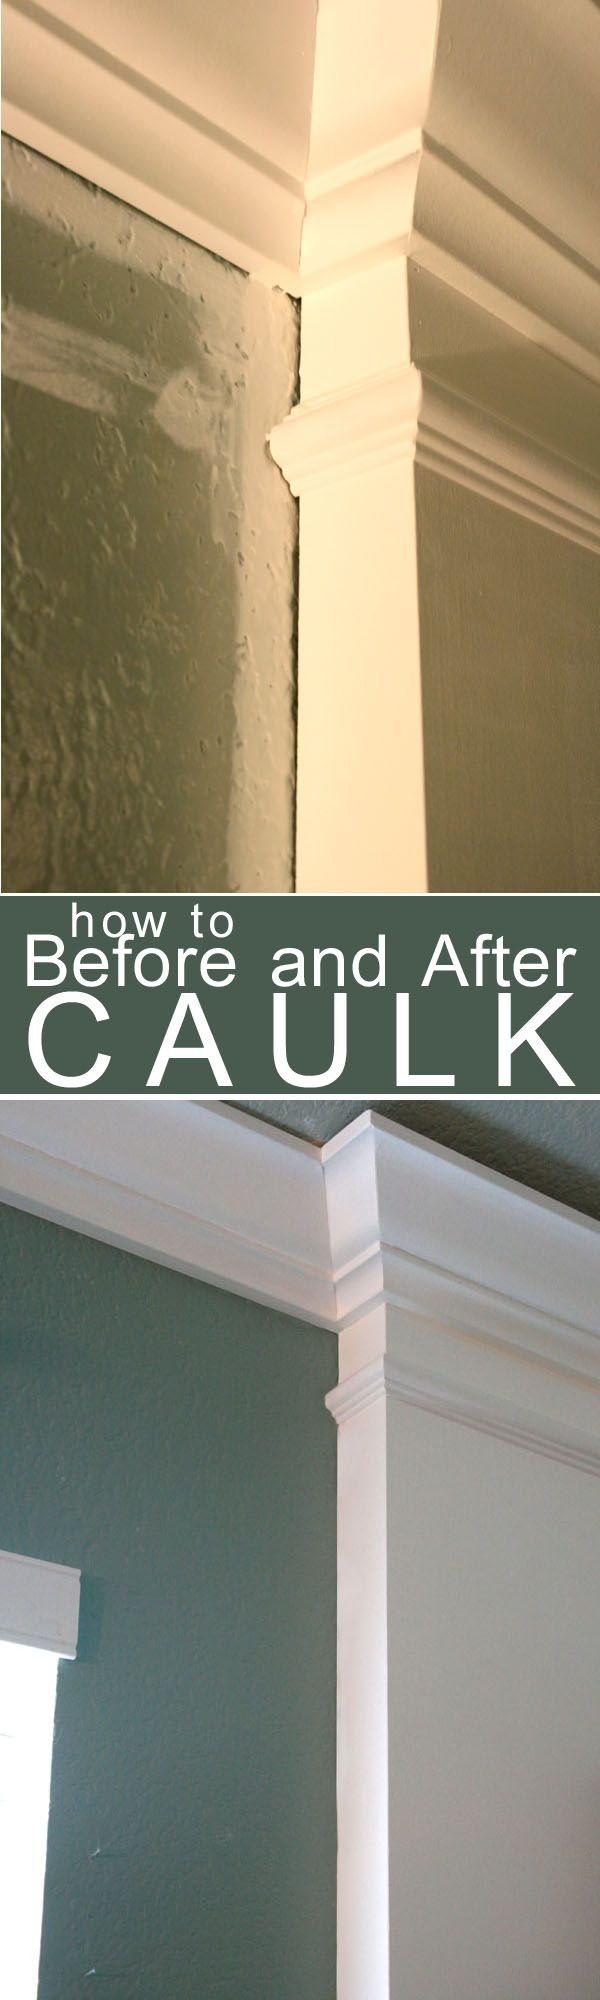 Best Caulk For Trim Top 25 Best Caulk Paint Ideas On Pinterest Decorators Caulk